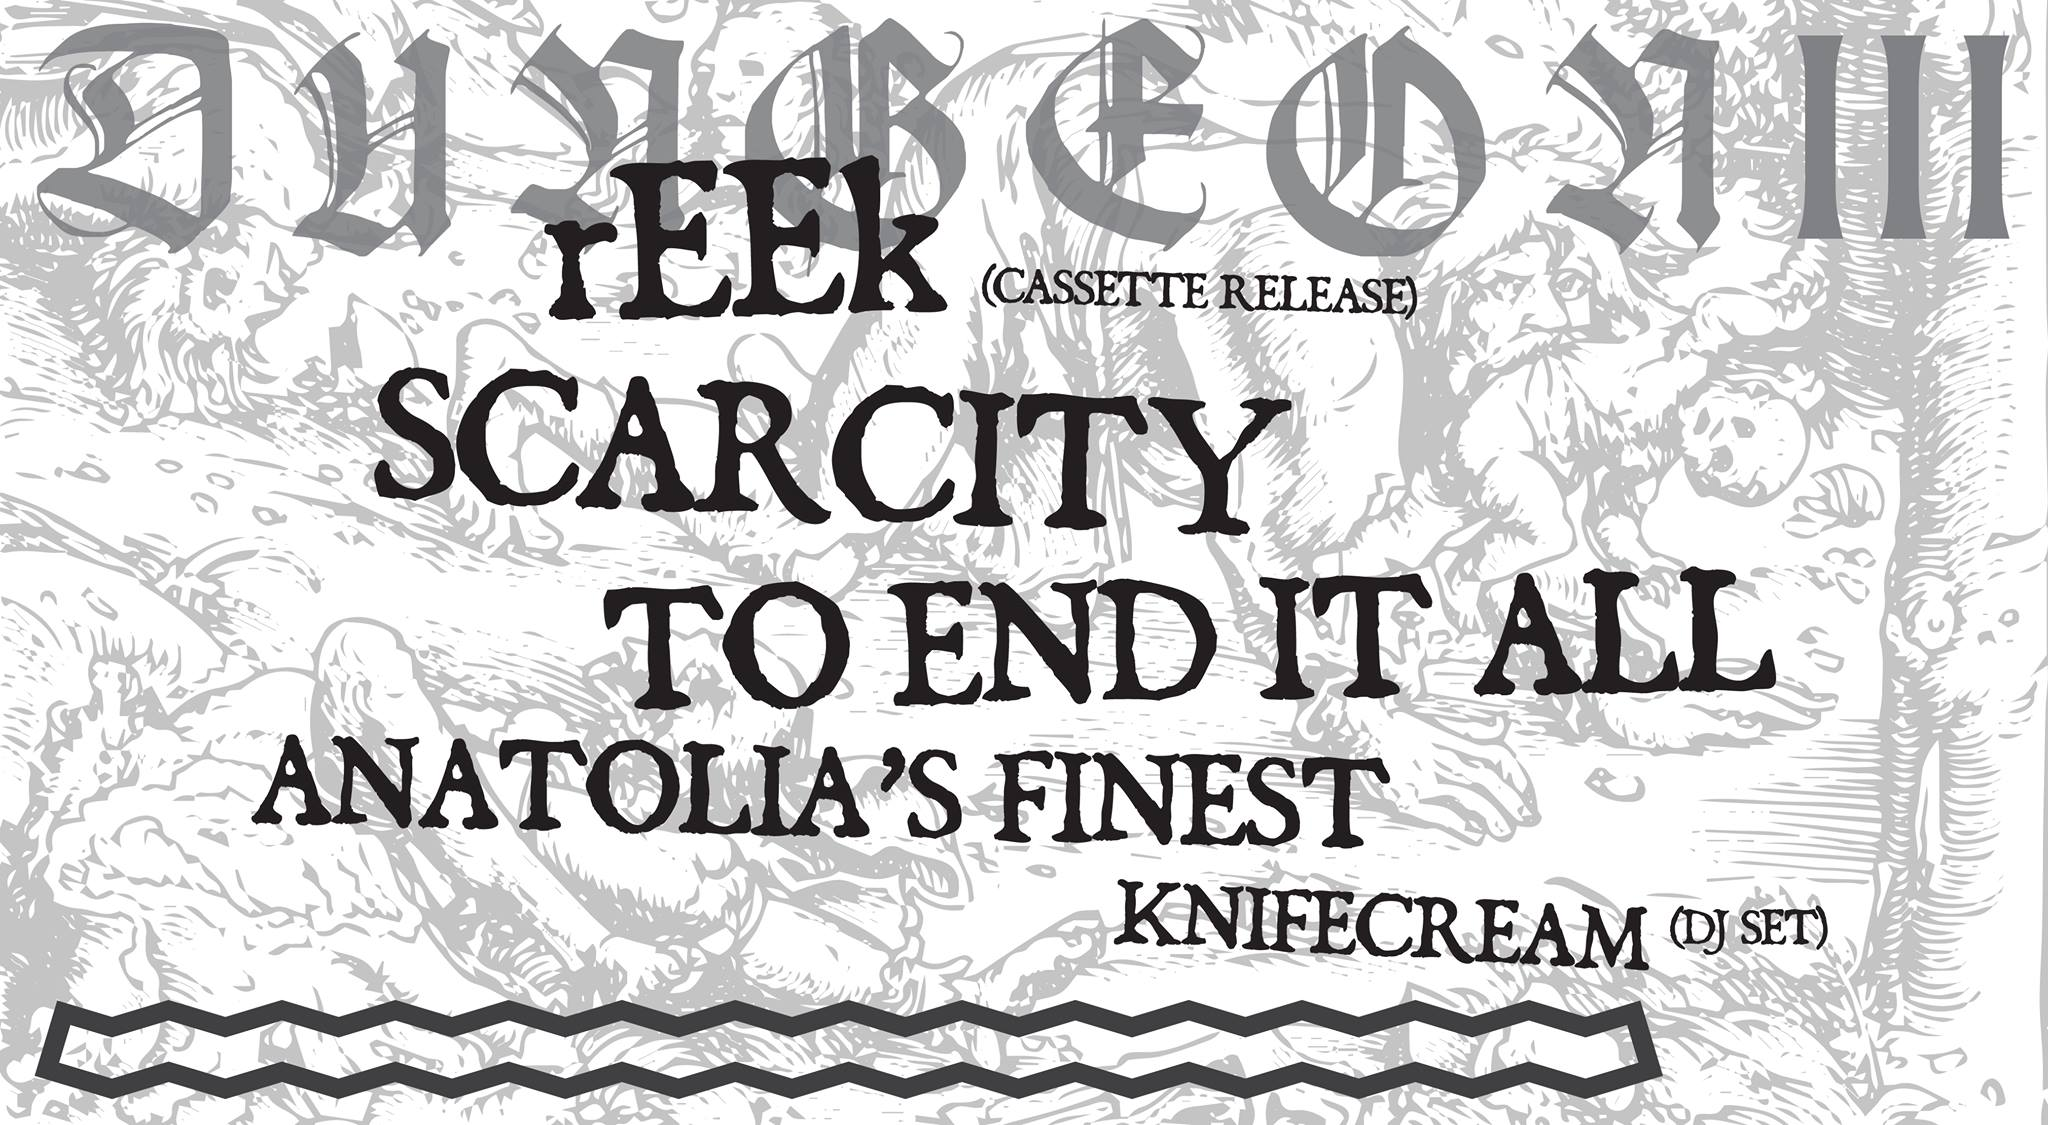 dungeon III 6-11-18 rEEk Scarcity To End It All Anatolias finest knifecream